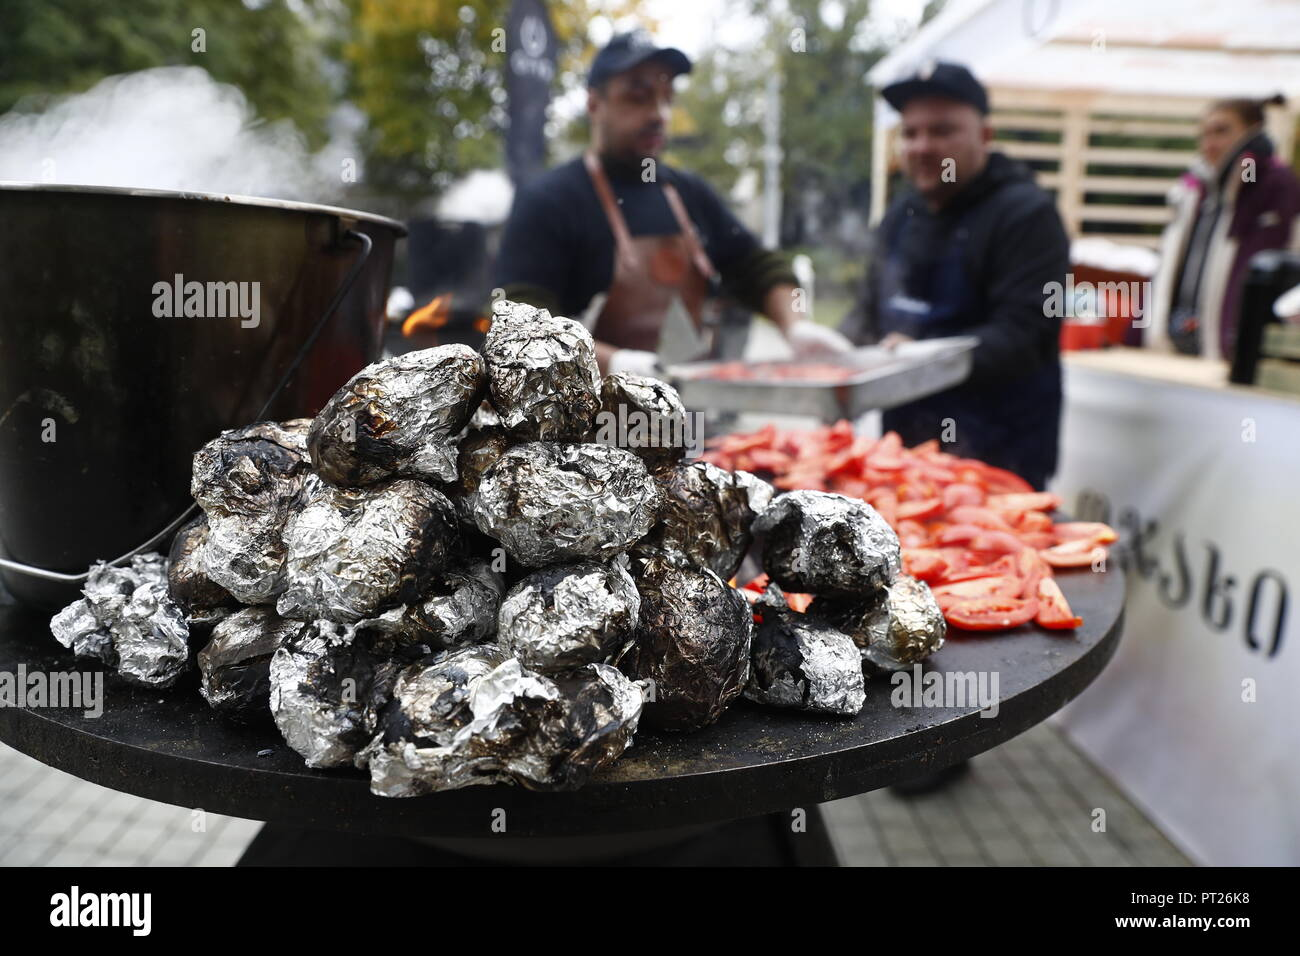 Moscow, Russia. 06th Oct, 2018. MOSCOW, RUSSIA - OCTOBER 6, 2018: Cooking at the annual 2018 Tbilisoba Festival of Georgian Culture at the Moscow Hermitage Garden. Artyom Geodakyan/TASS Credit: ITAR-TASS News Agency/Alamy Live News Stock Photo